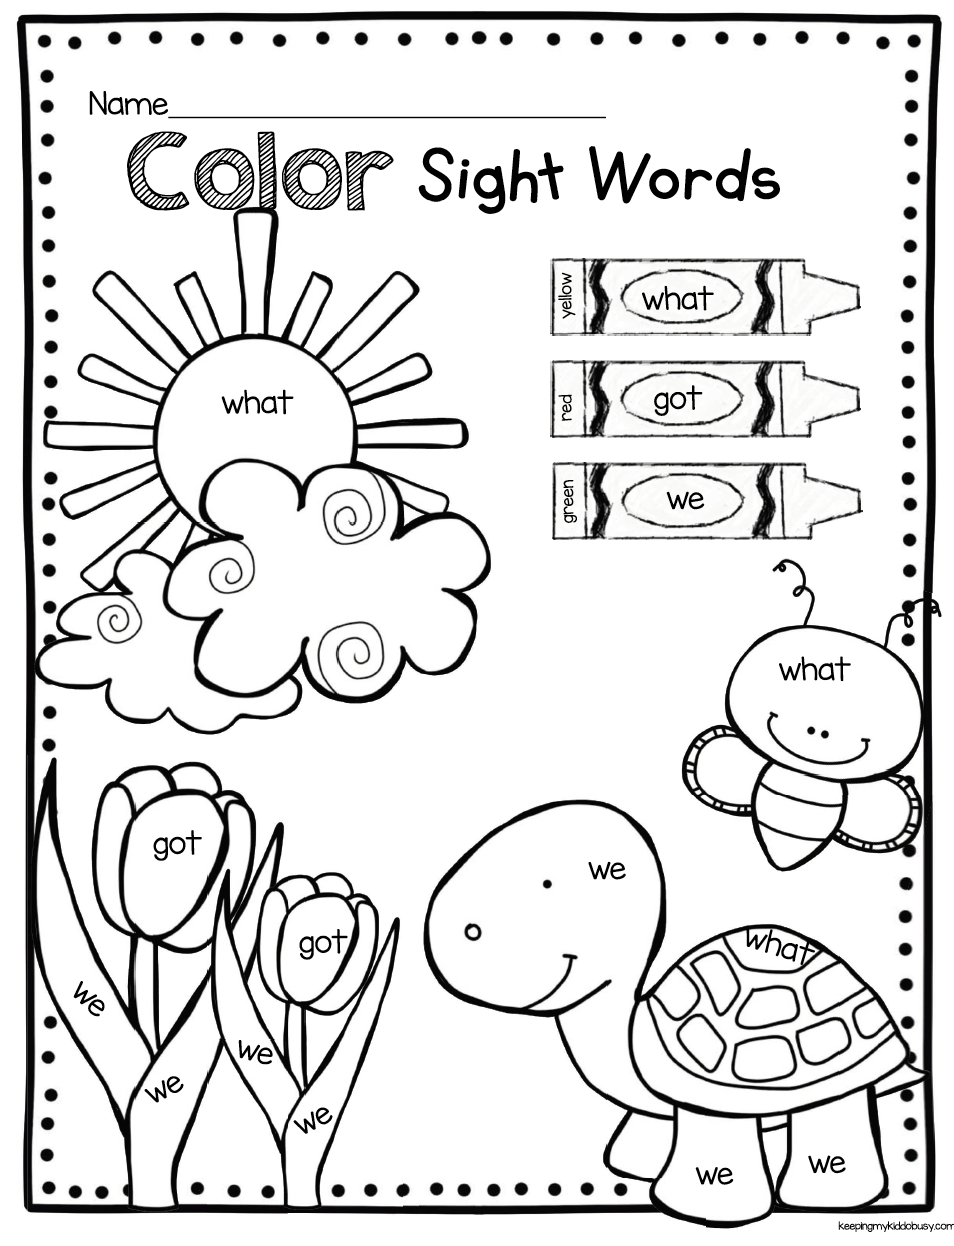 image regarding Color by Sight Word Printable titled Could inside Kindergarten - FREEBIES Math Recommendations Imprimibles